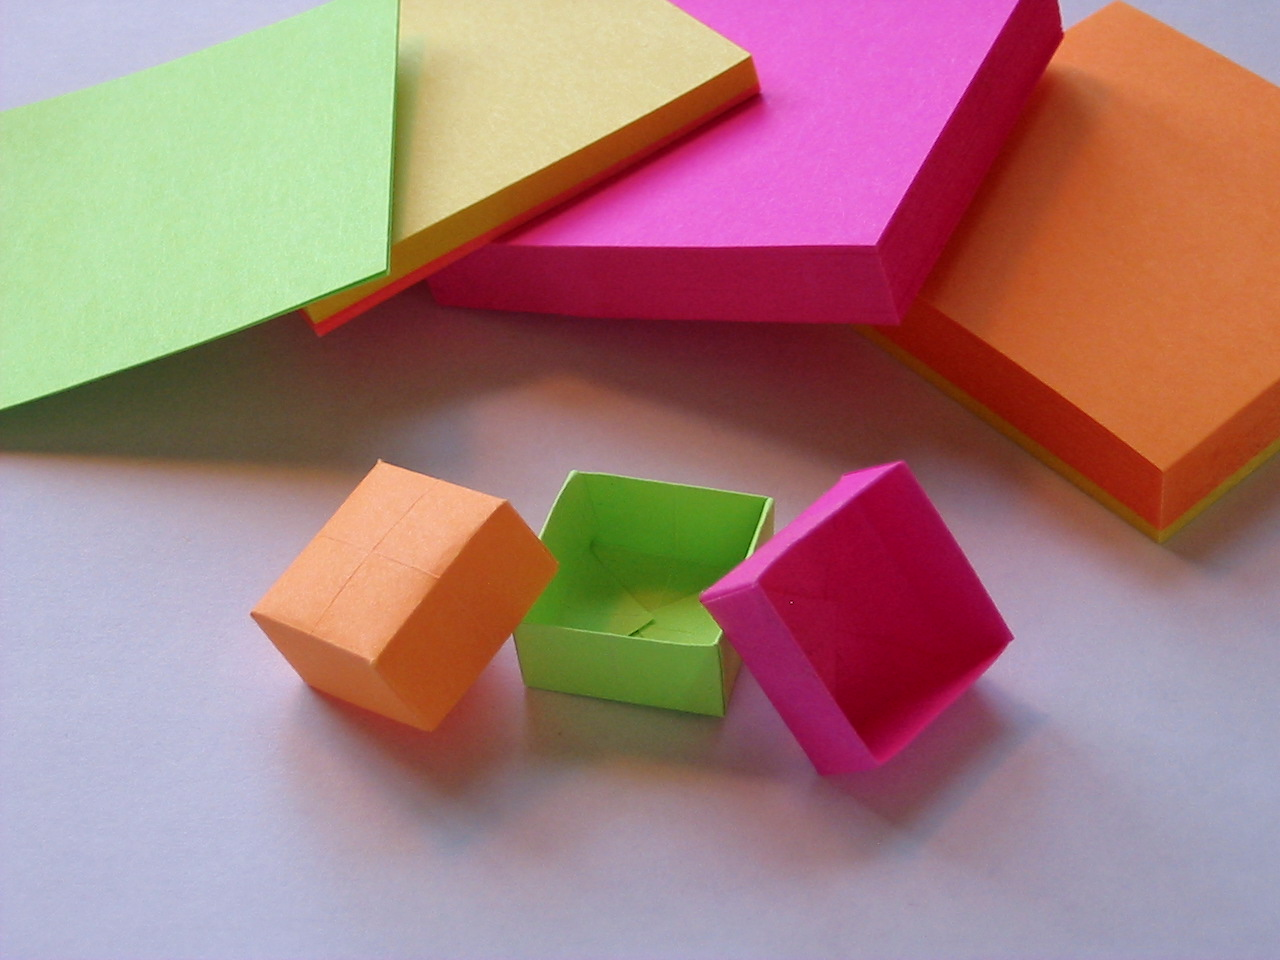 Origami Post-it box